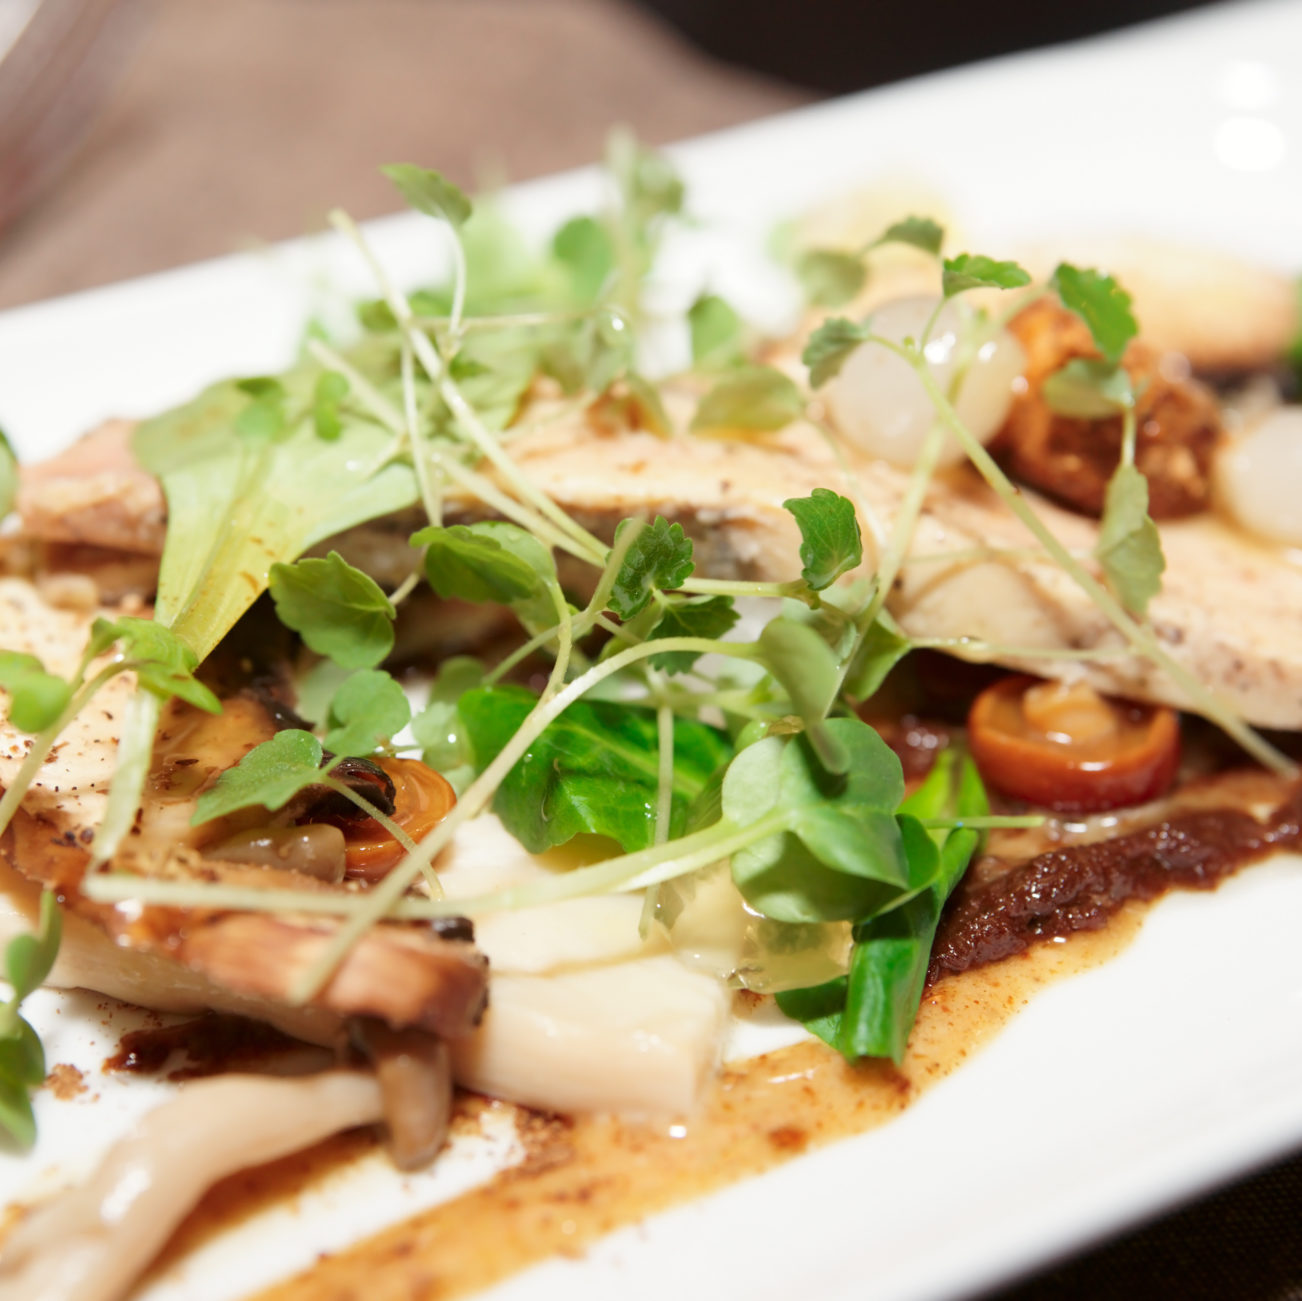 Sauteed Shiitake Mushrooms with Ginger and Watercress